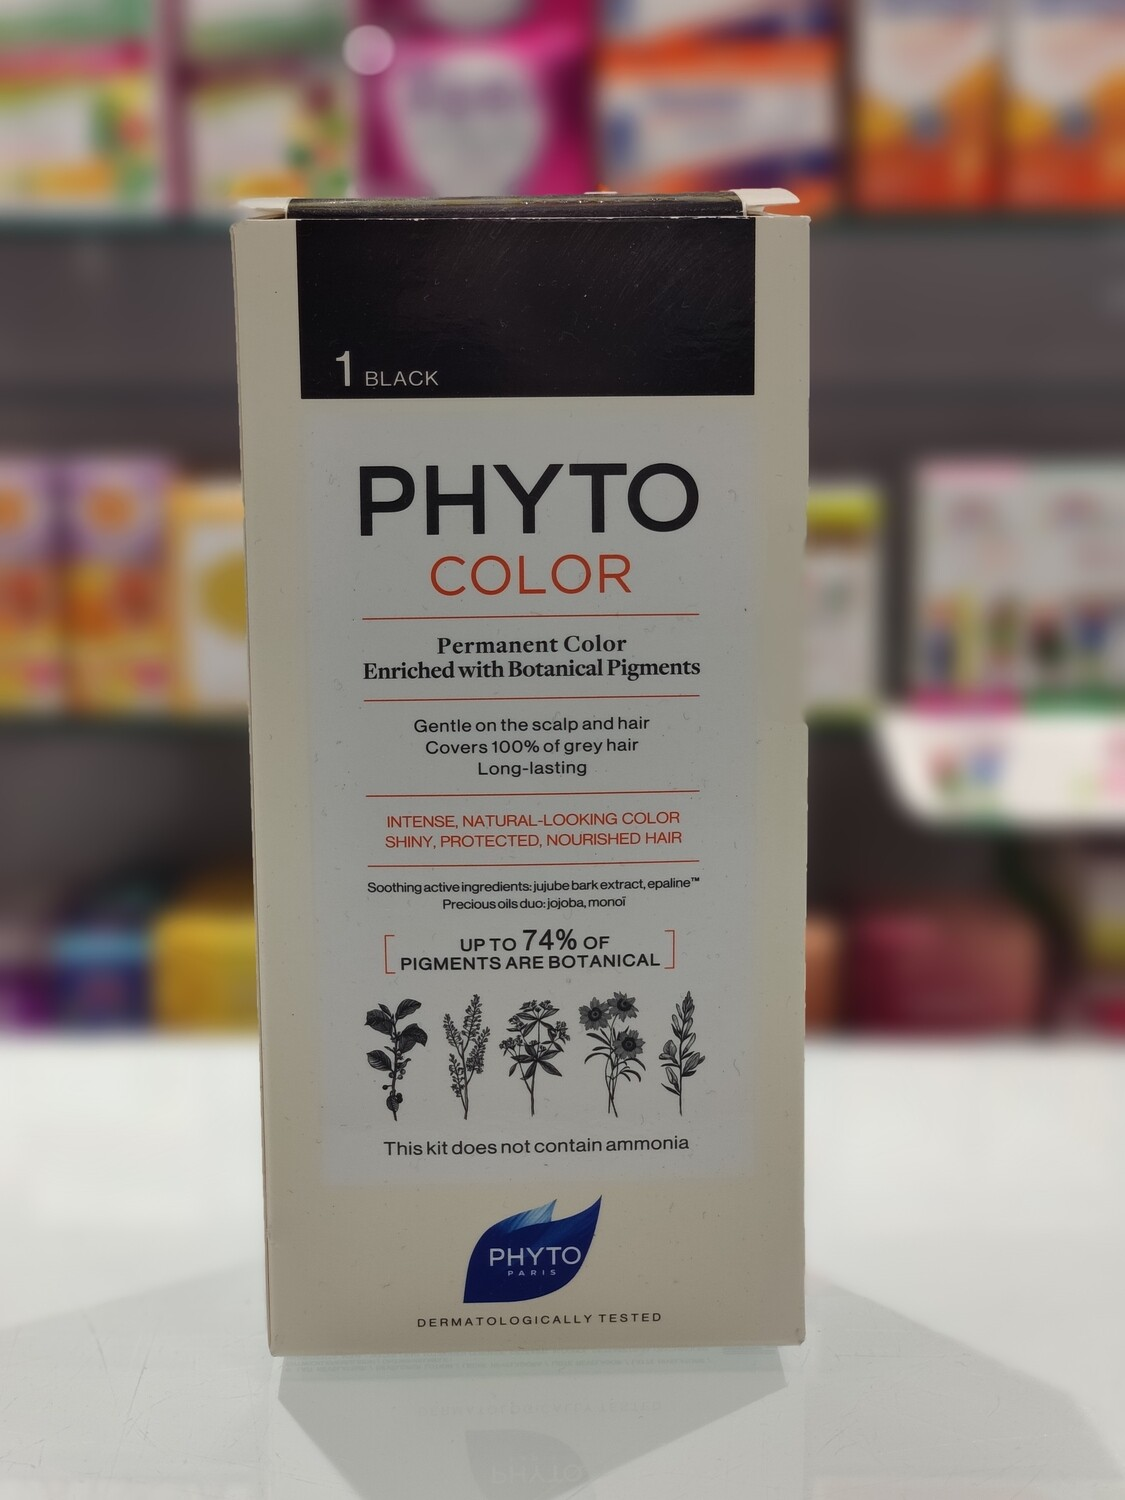 PHYTOCOLOR COLOR PERMANENTE - Color de cabello : 1 Negro